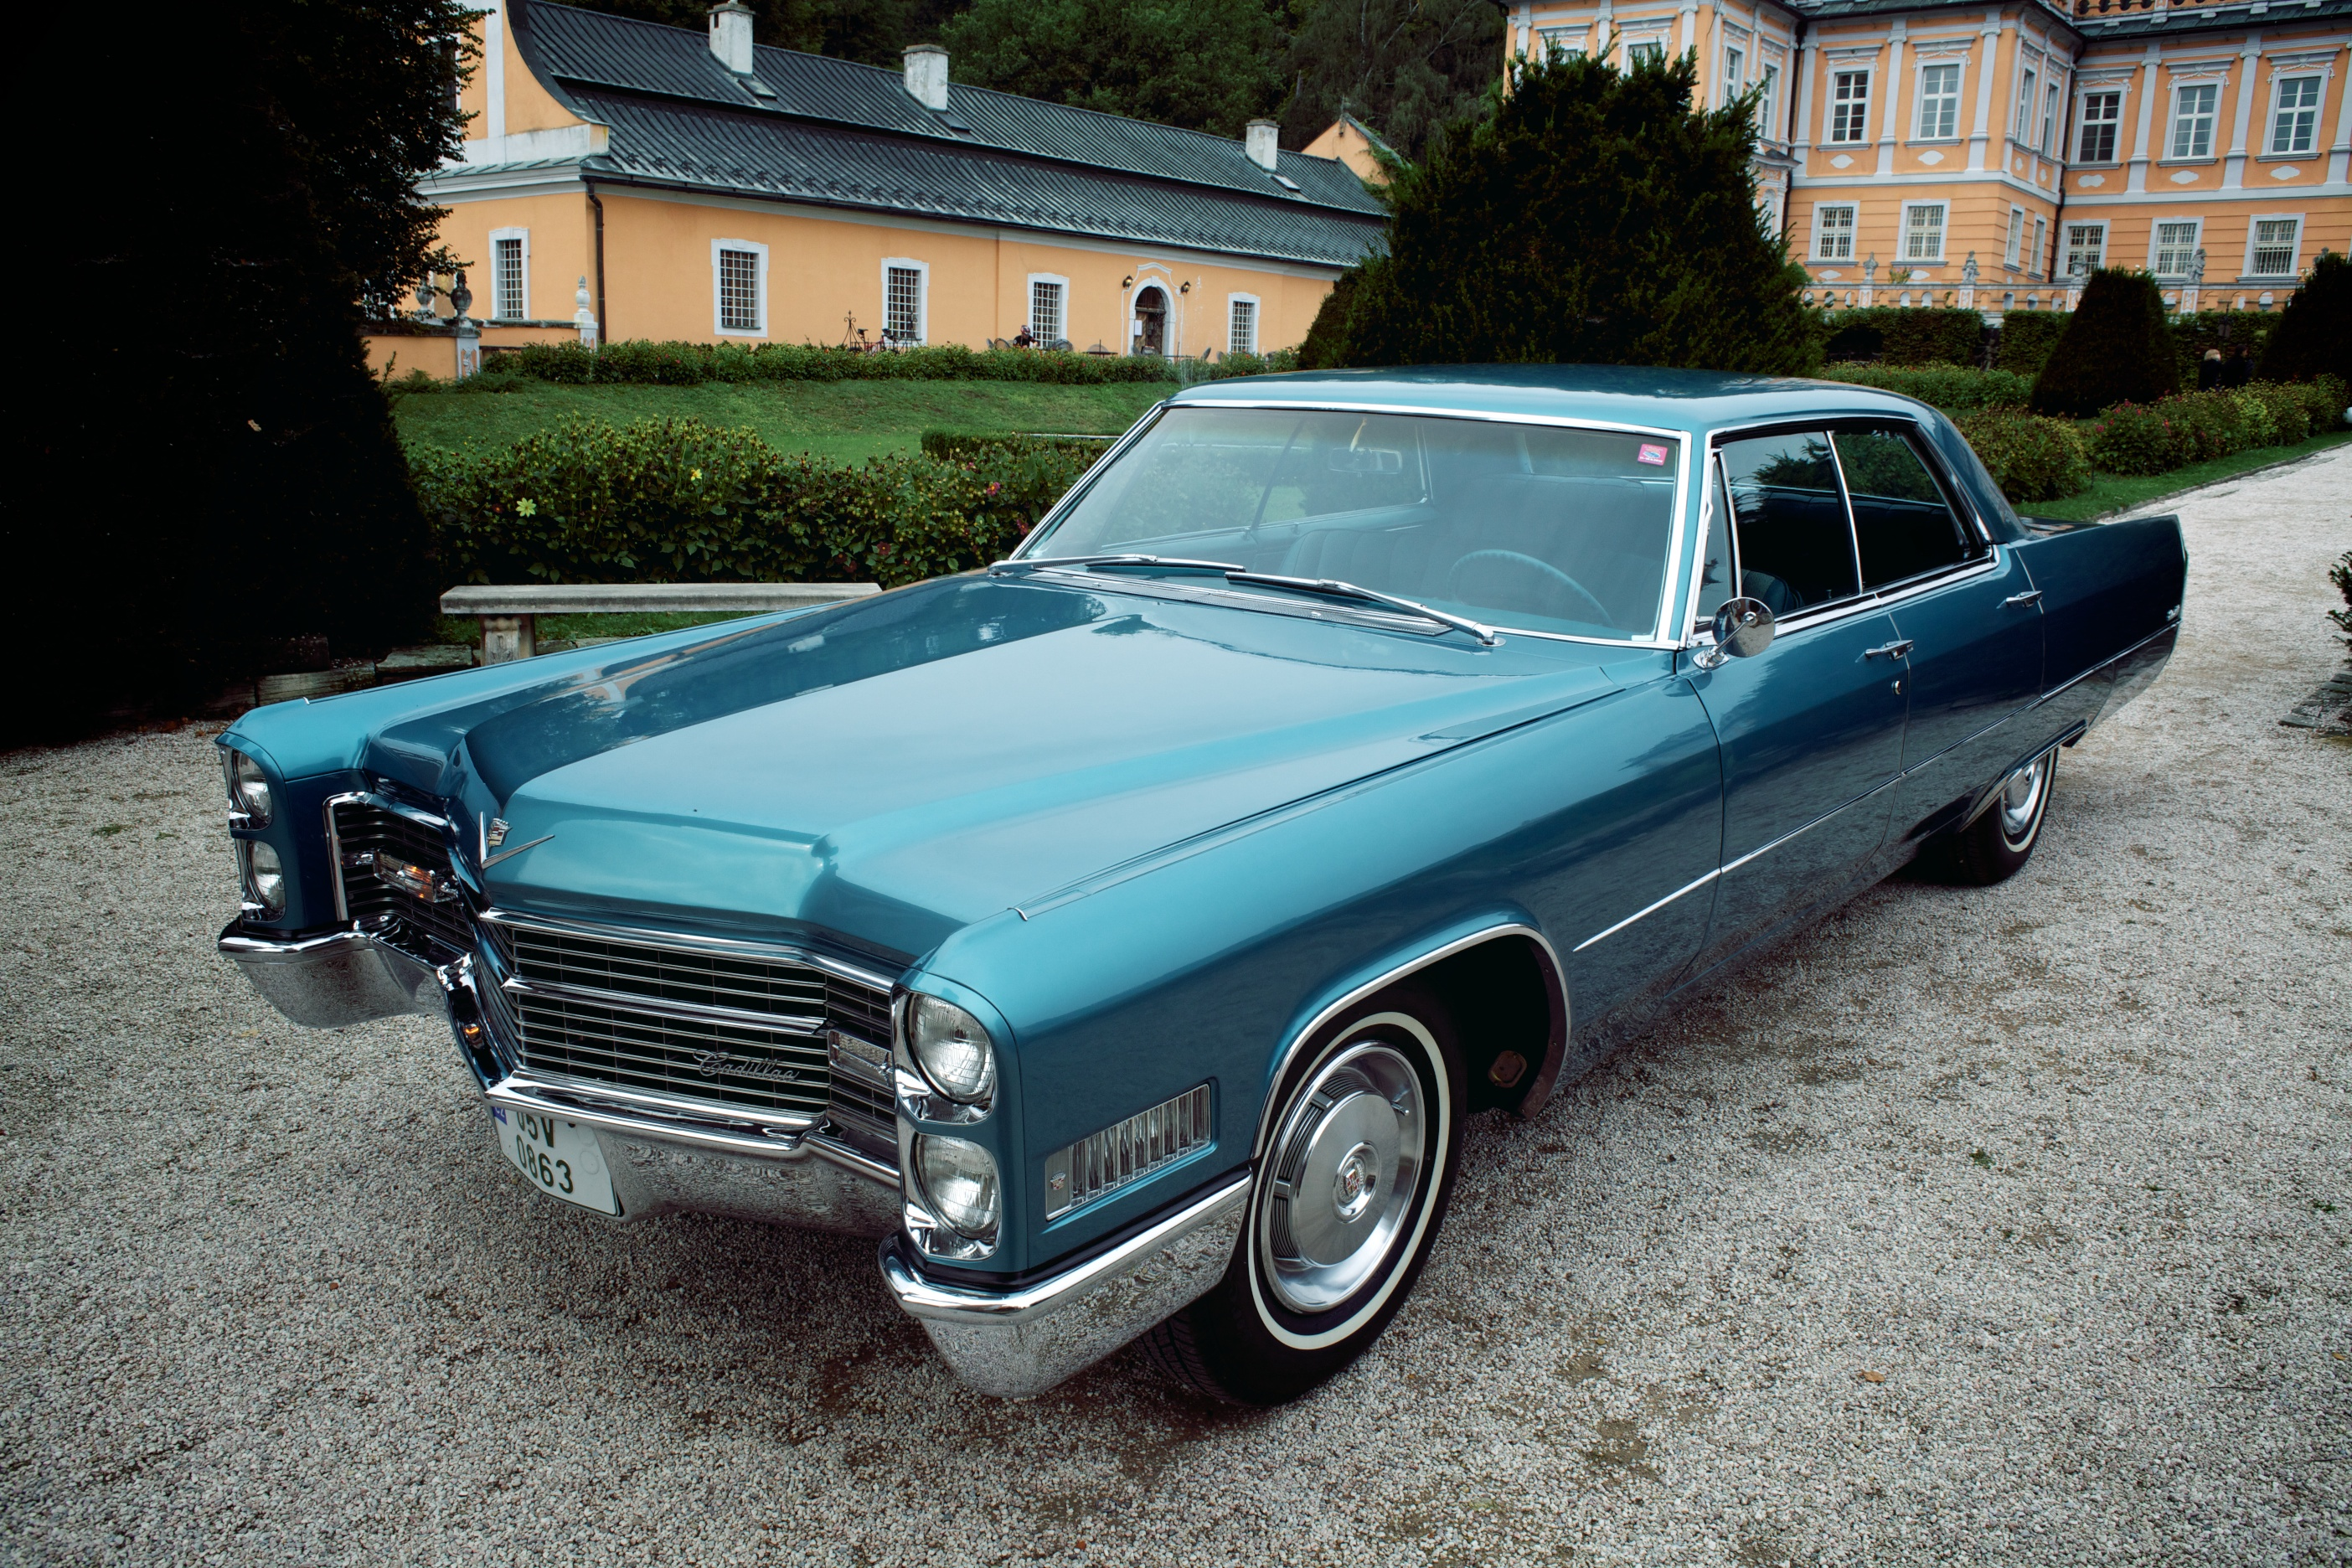 1966 cadillac coupe deville deville photo 4 pictures to pin on. Cars Review. Best American Auto & Cars Review